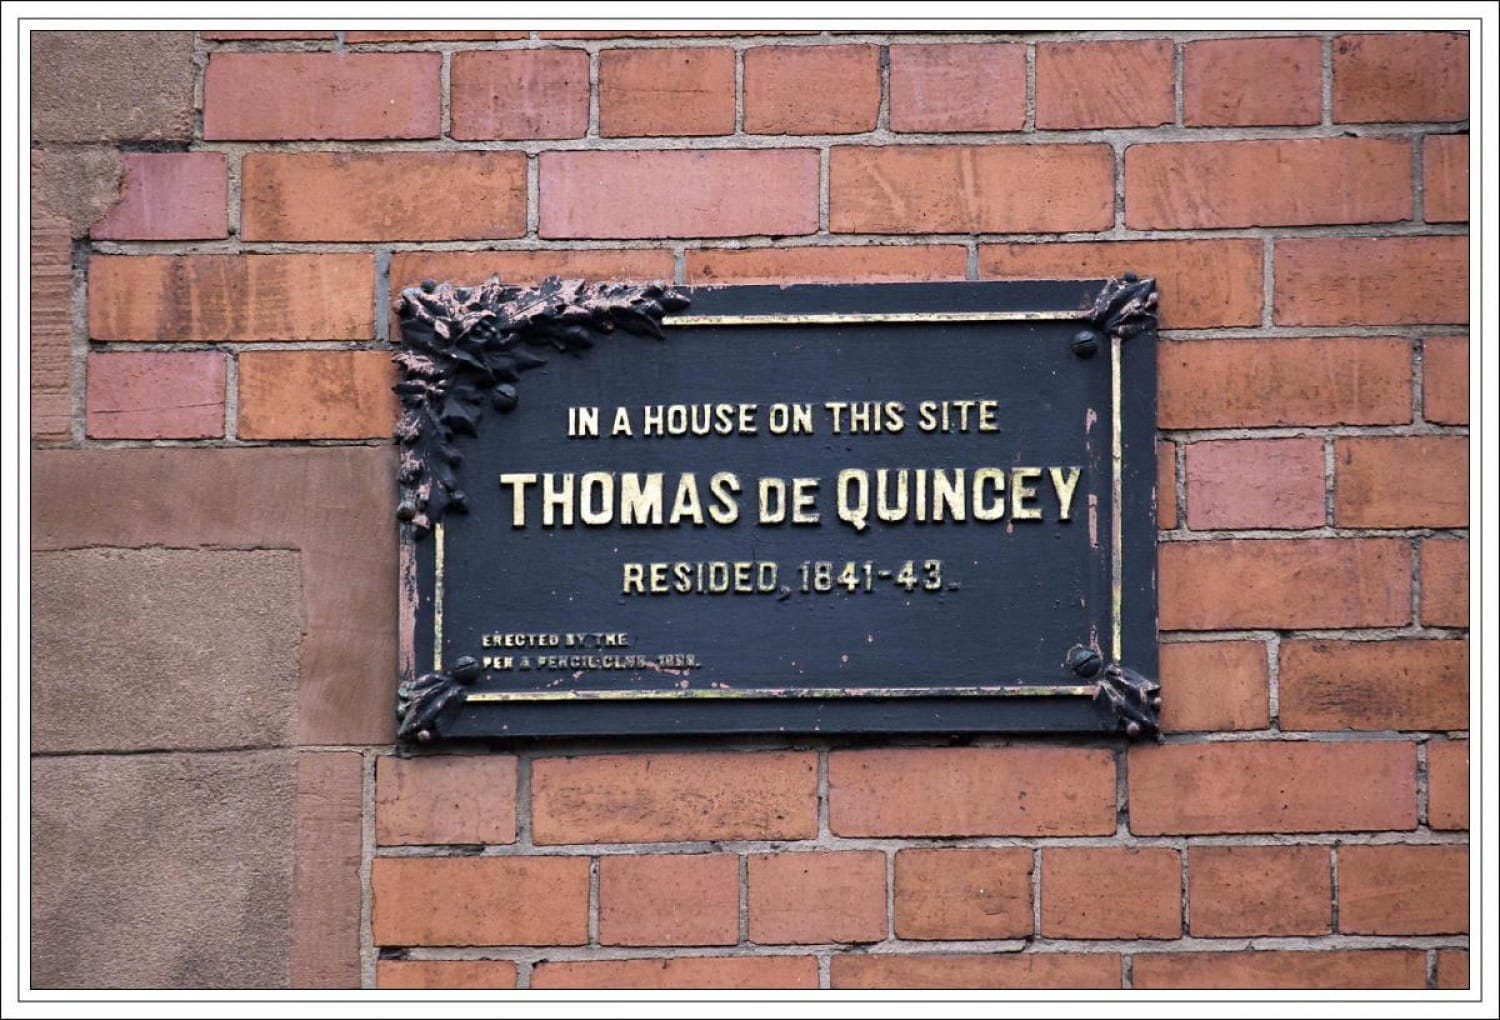 The plaque that marks the building